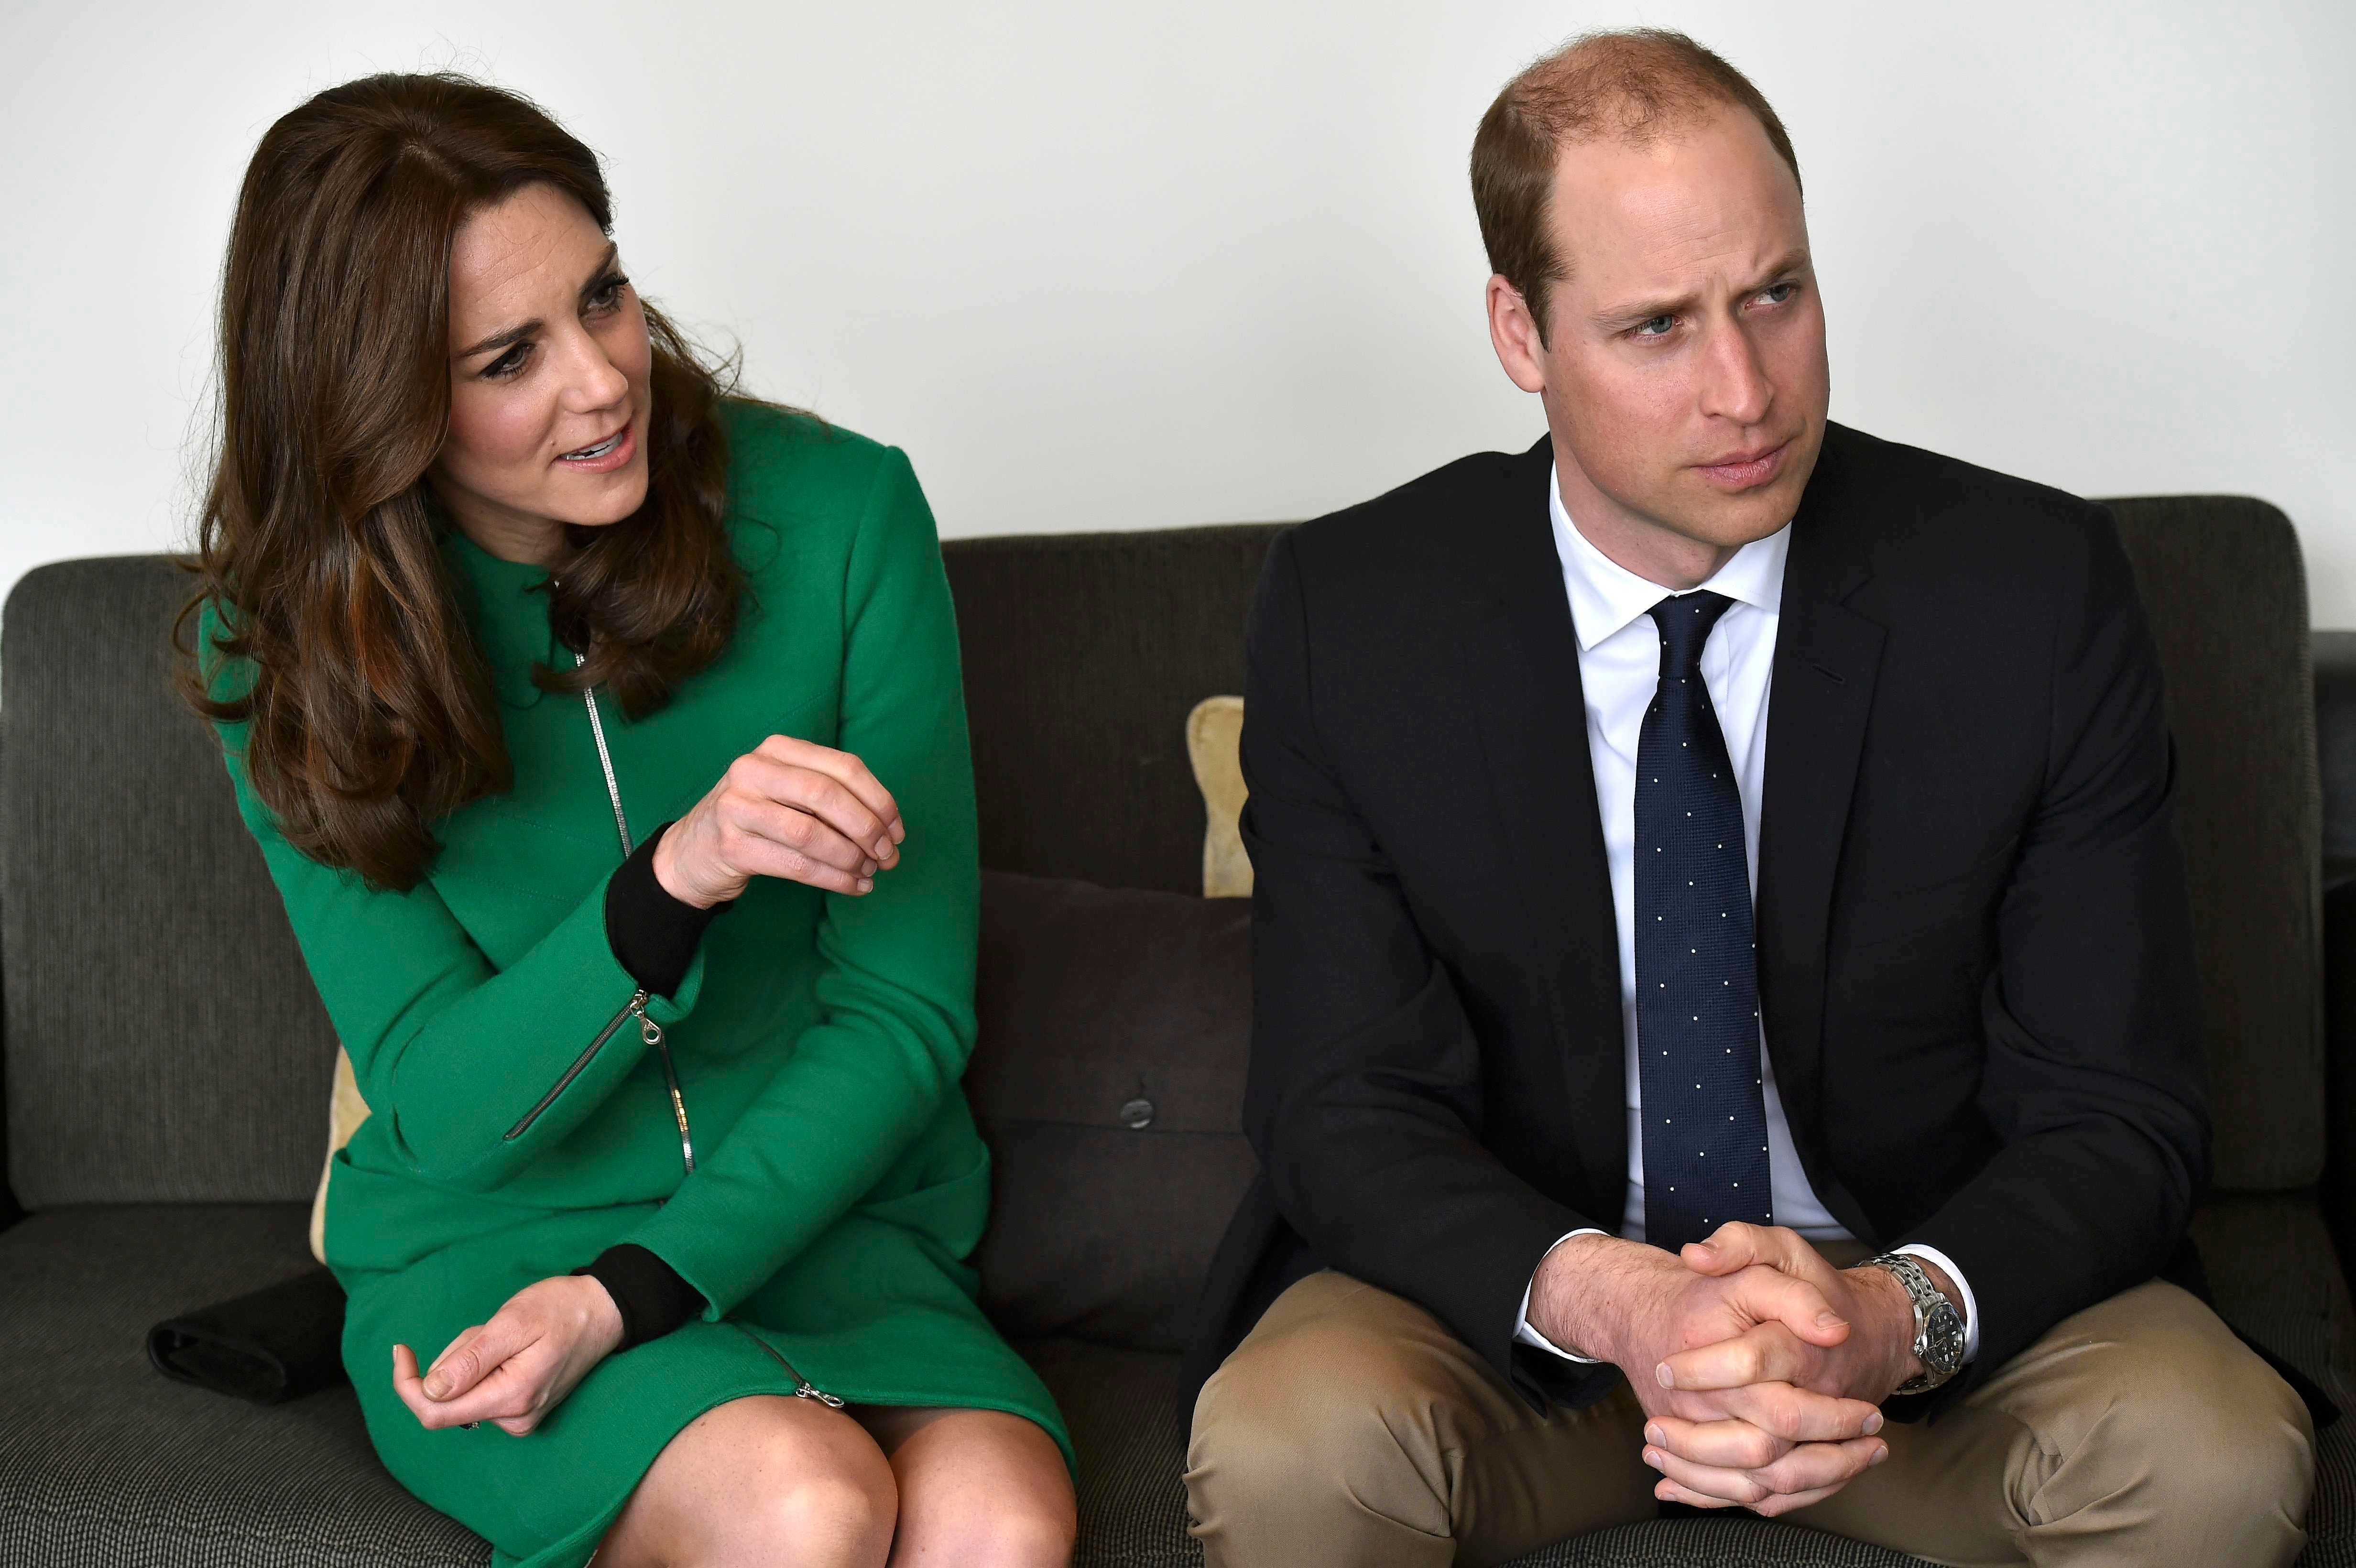 The Duke and Duchess of Cambridge have spoken out about the importance of young people's mental